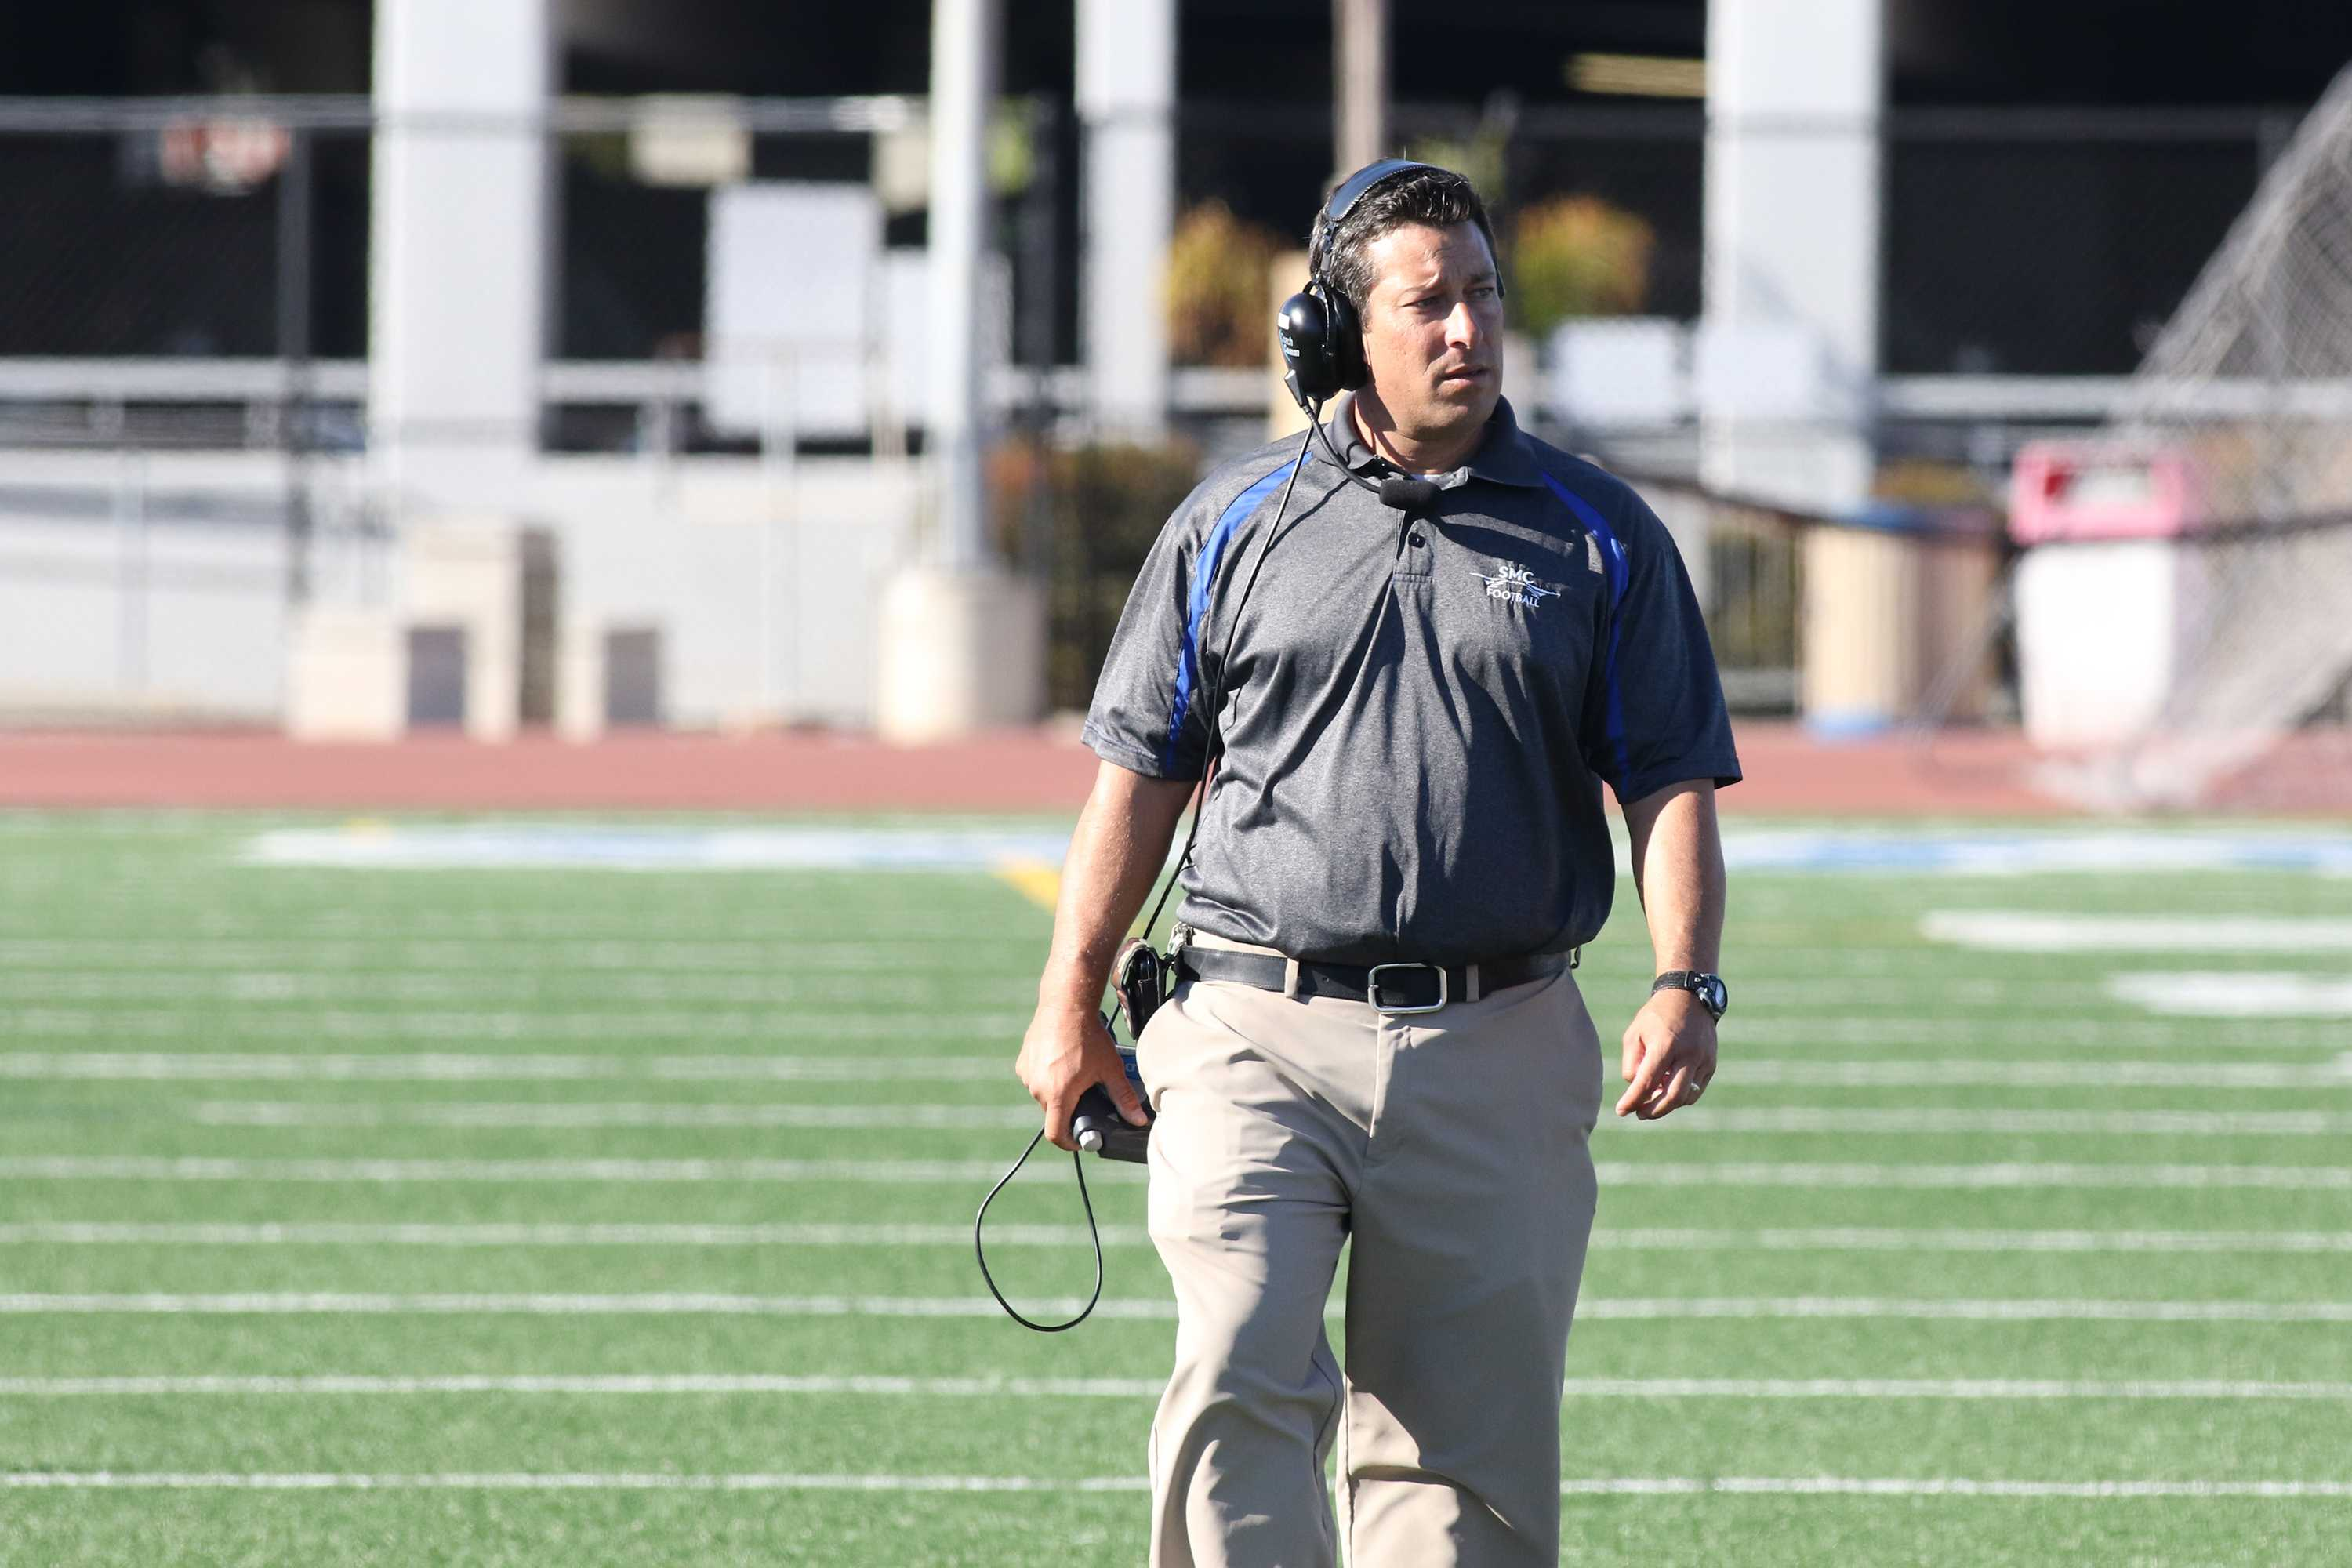 Santa Monica College Coach Gifford Lindheim during Pierce College game on Nov. 14, 2015 at SMC in Santa Monica, CA. Photo credit: Photo by Jevone Moore / Full Image 360